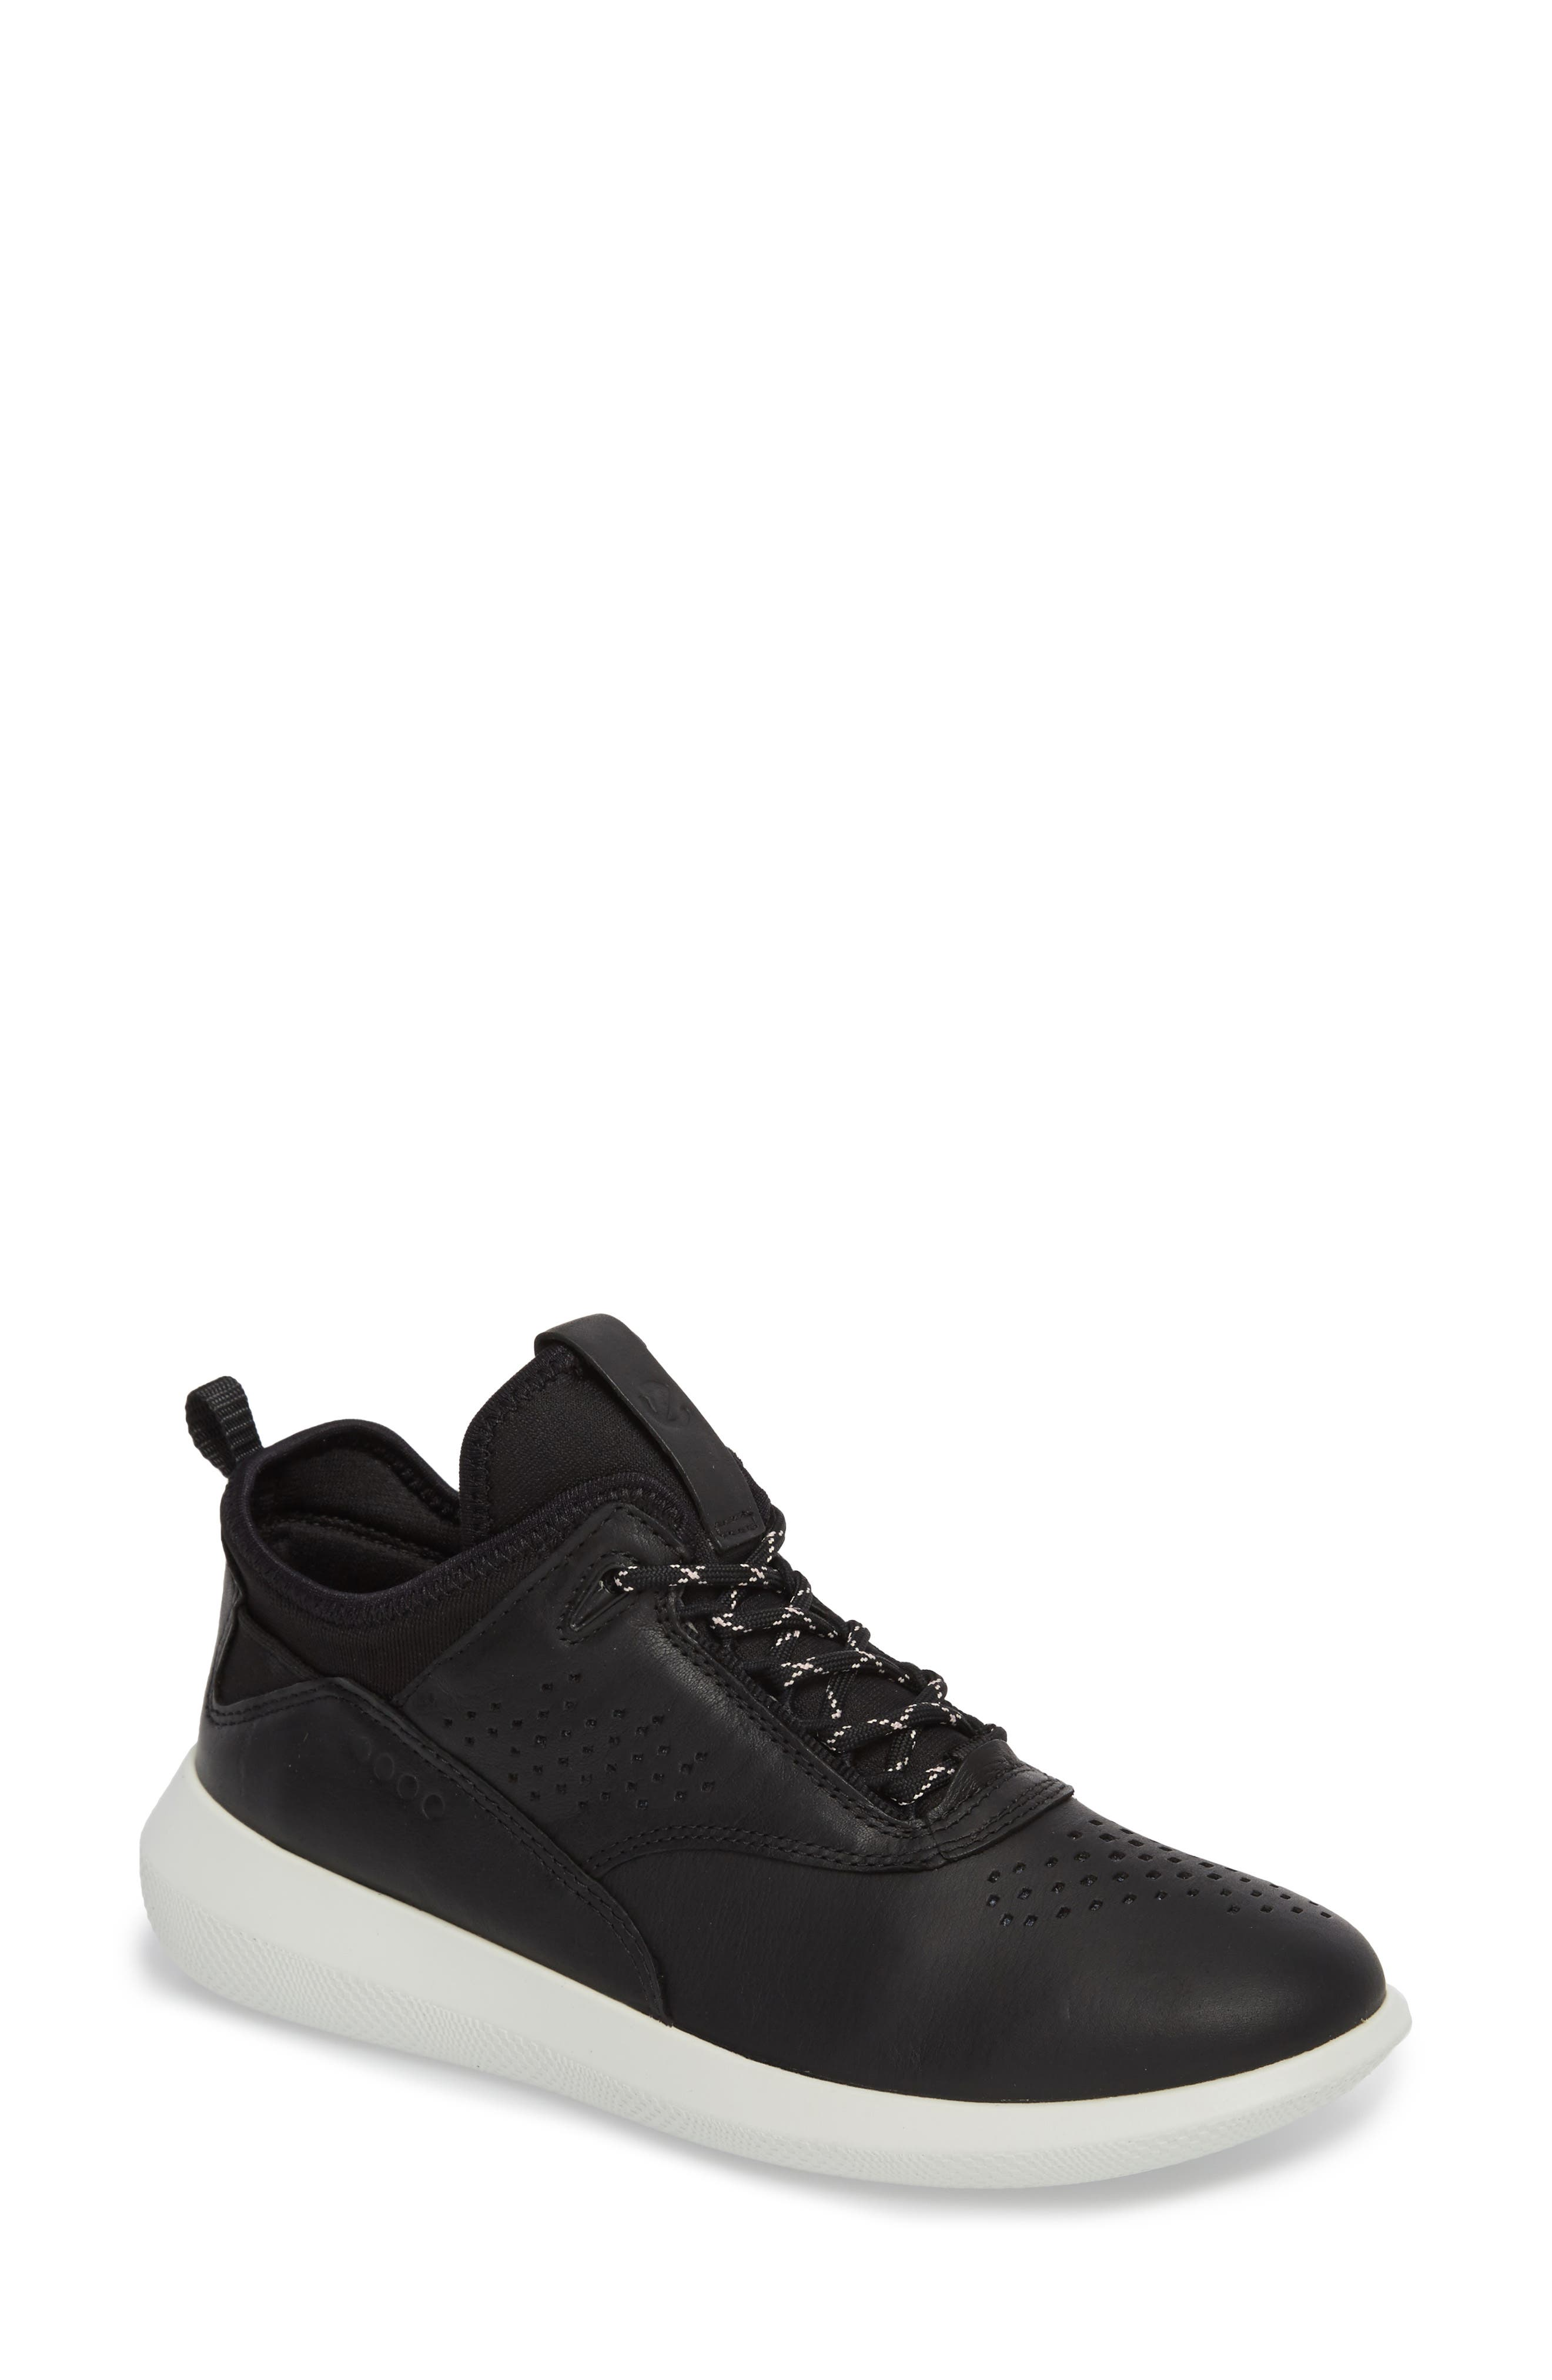 Scinapse Sneaker,                             Main thumbnail 1, color,                             Black Leather